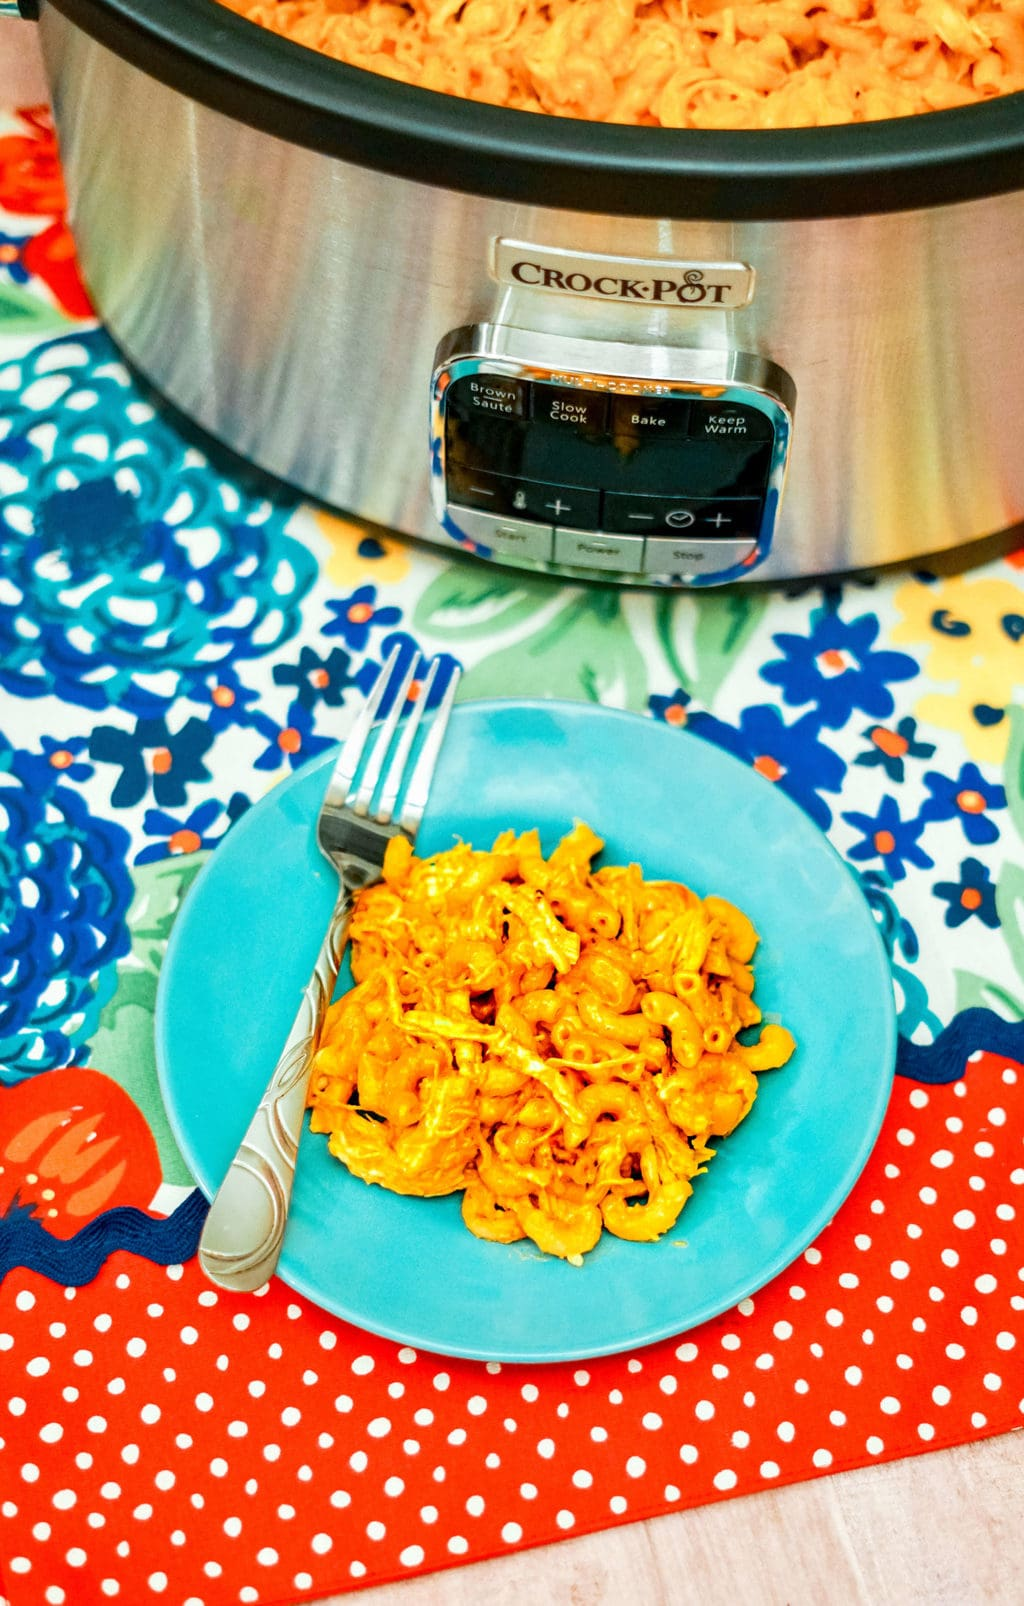 A plate of Mac and cheese on a floral tablecloth.